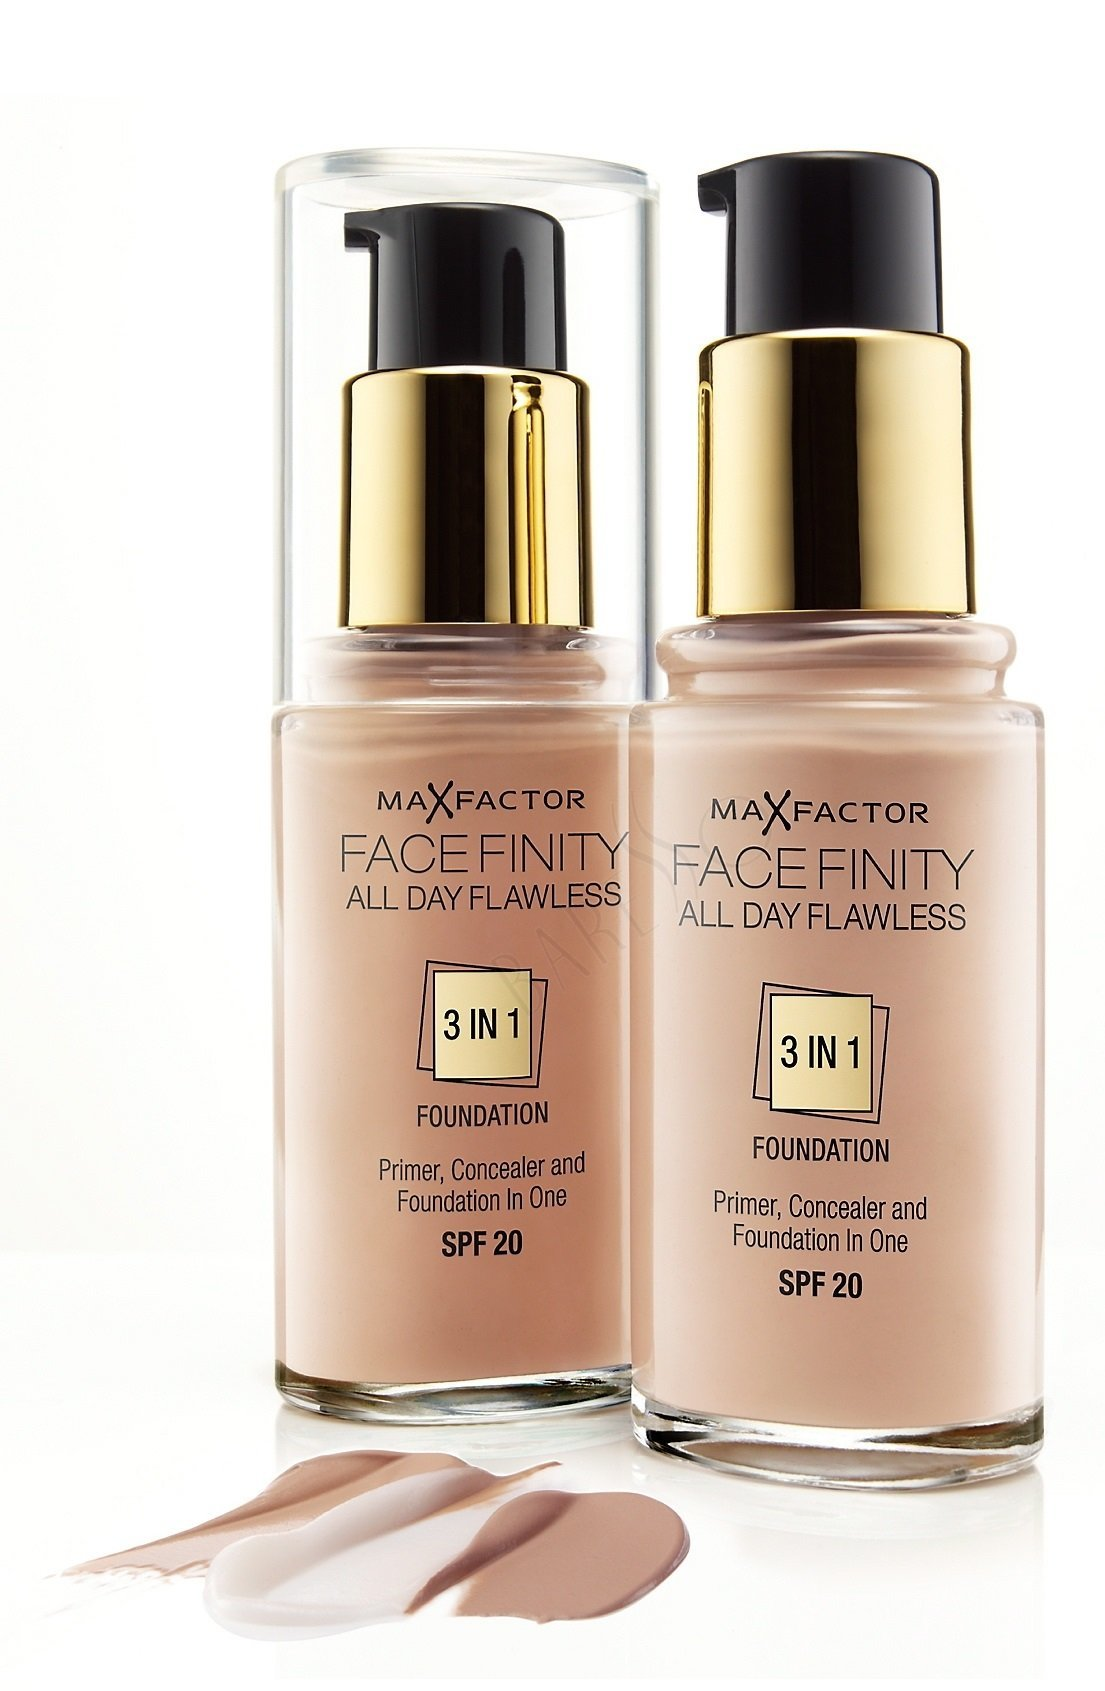 572885eb7e9 Jumestuskreem Face Finity All Day Flawless 3in1 Max Factor 30 ml